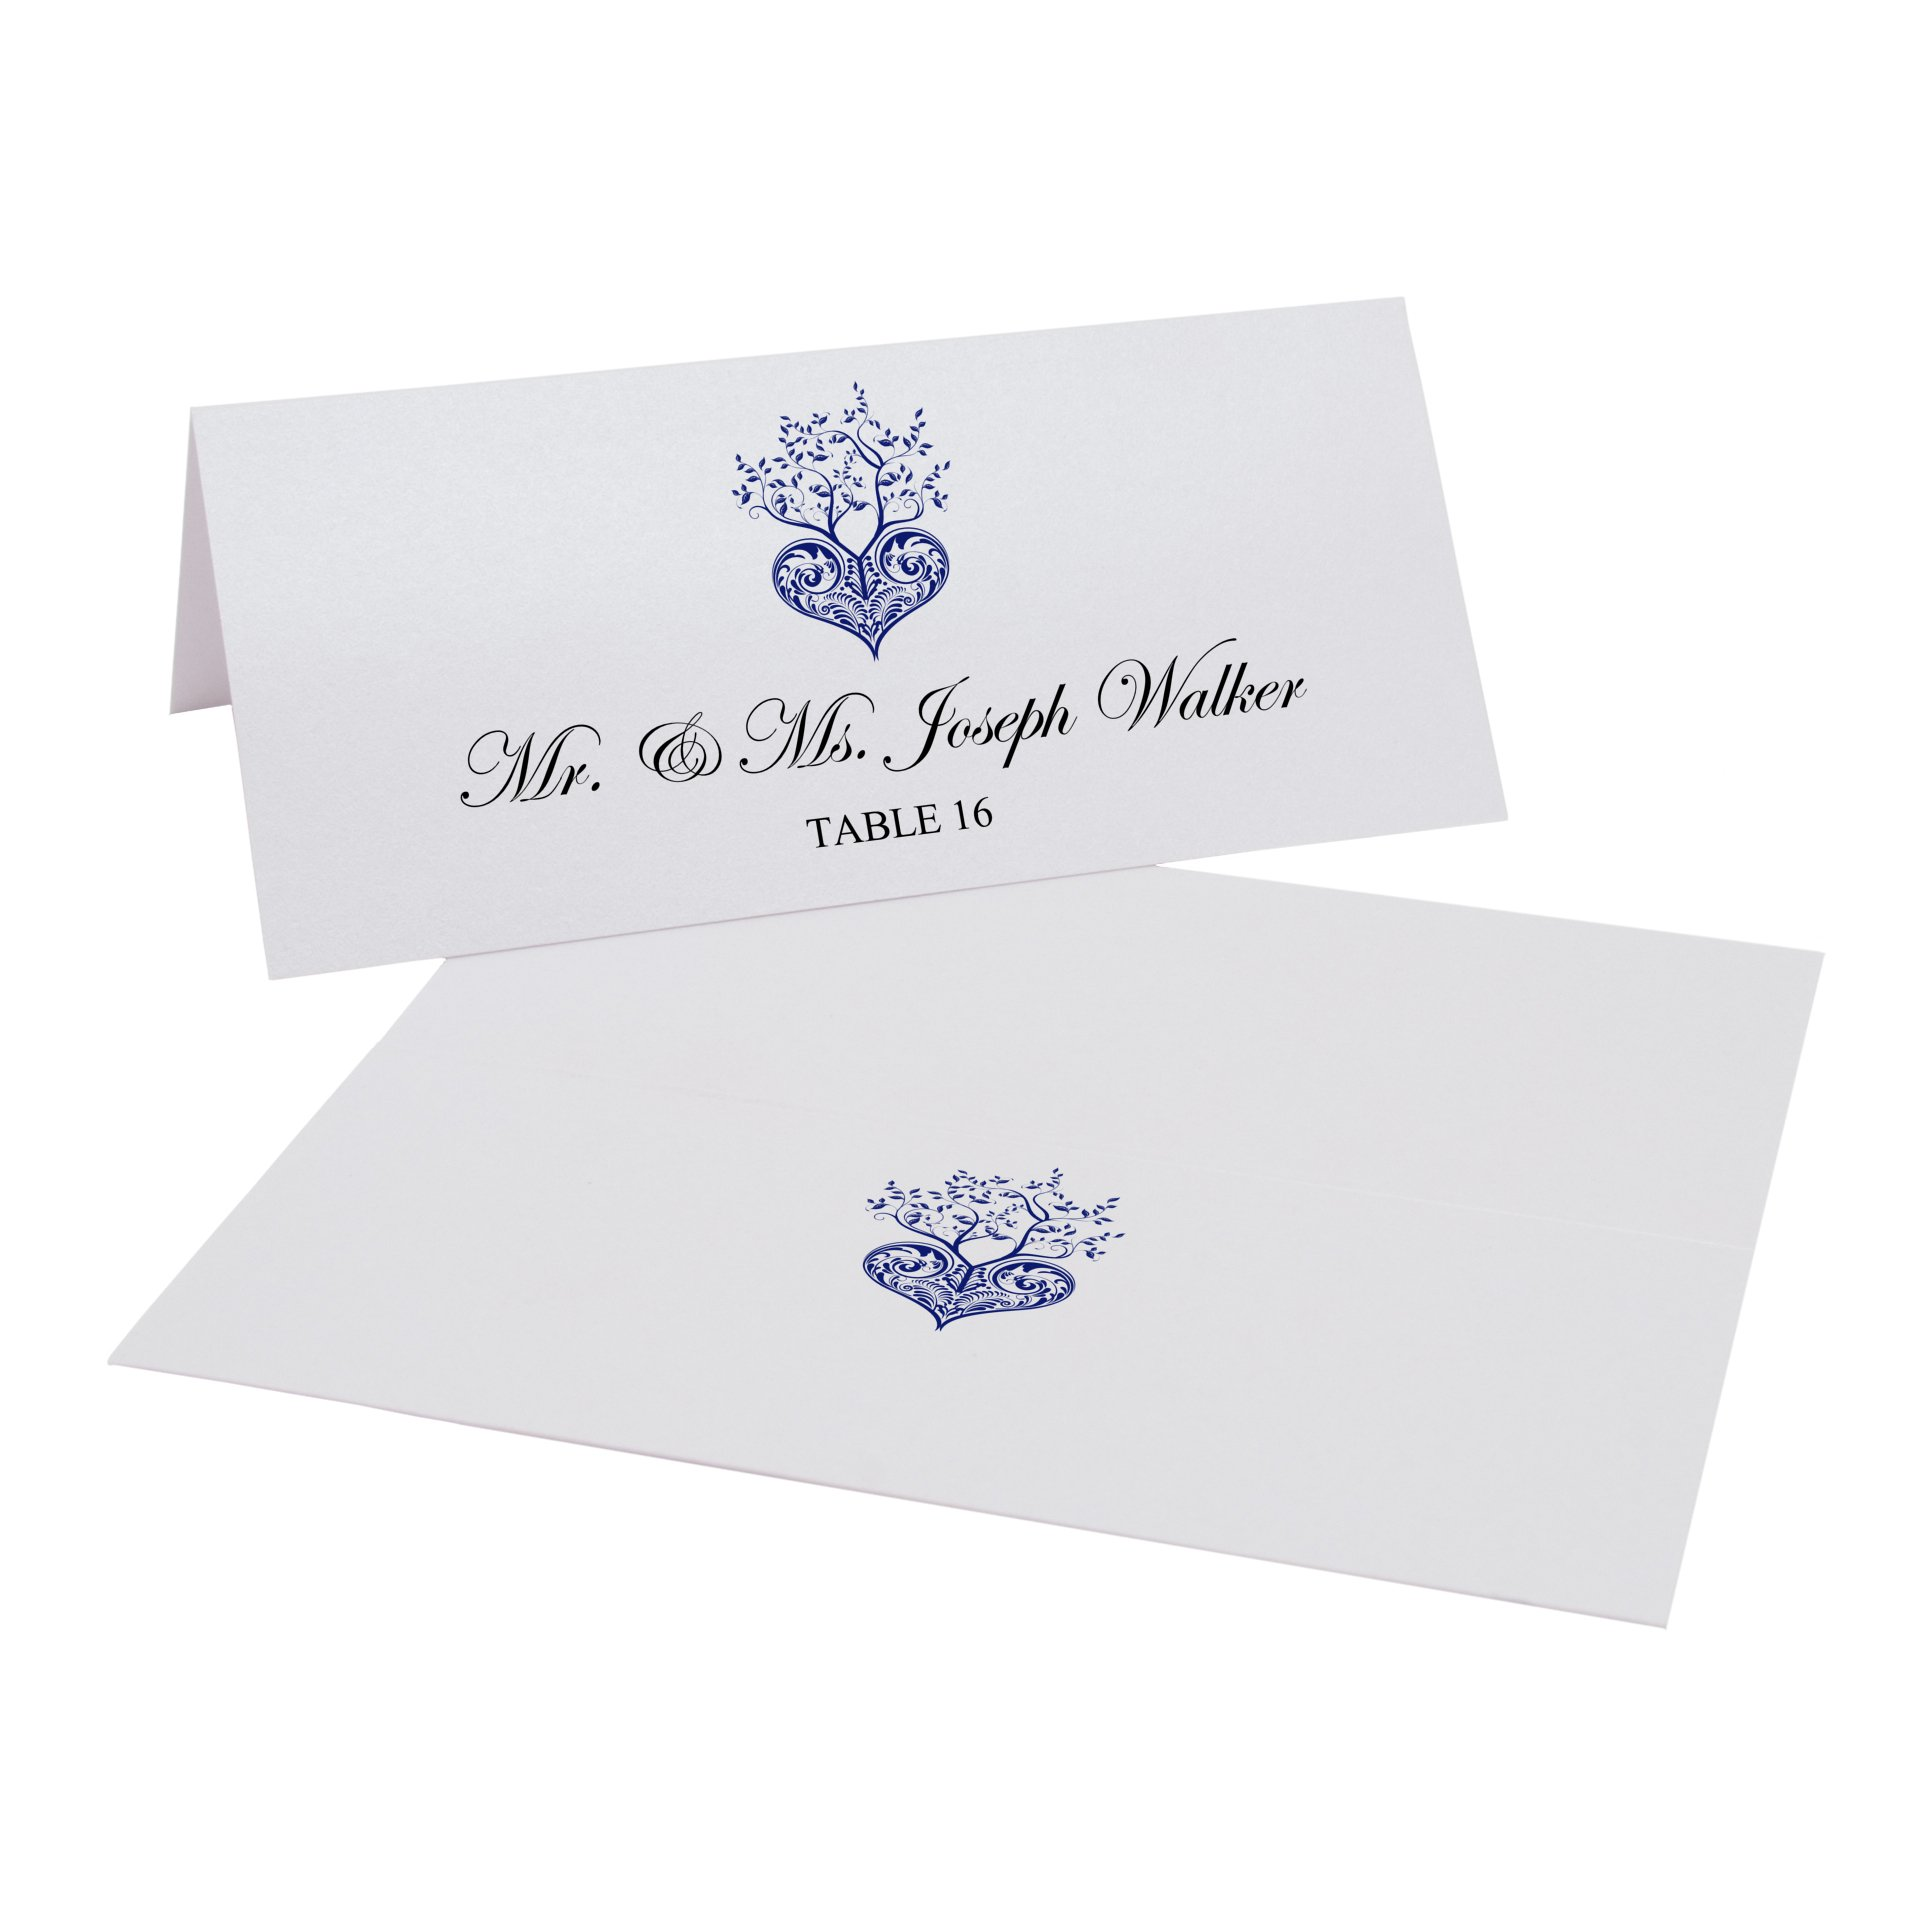 Documents and Designs Tree of Life Heart Easy Print Place Cards (Select Color), Navy, Set of 150 (25 Sheets)